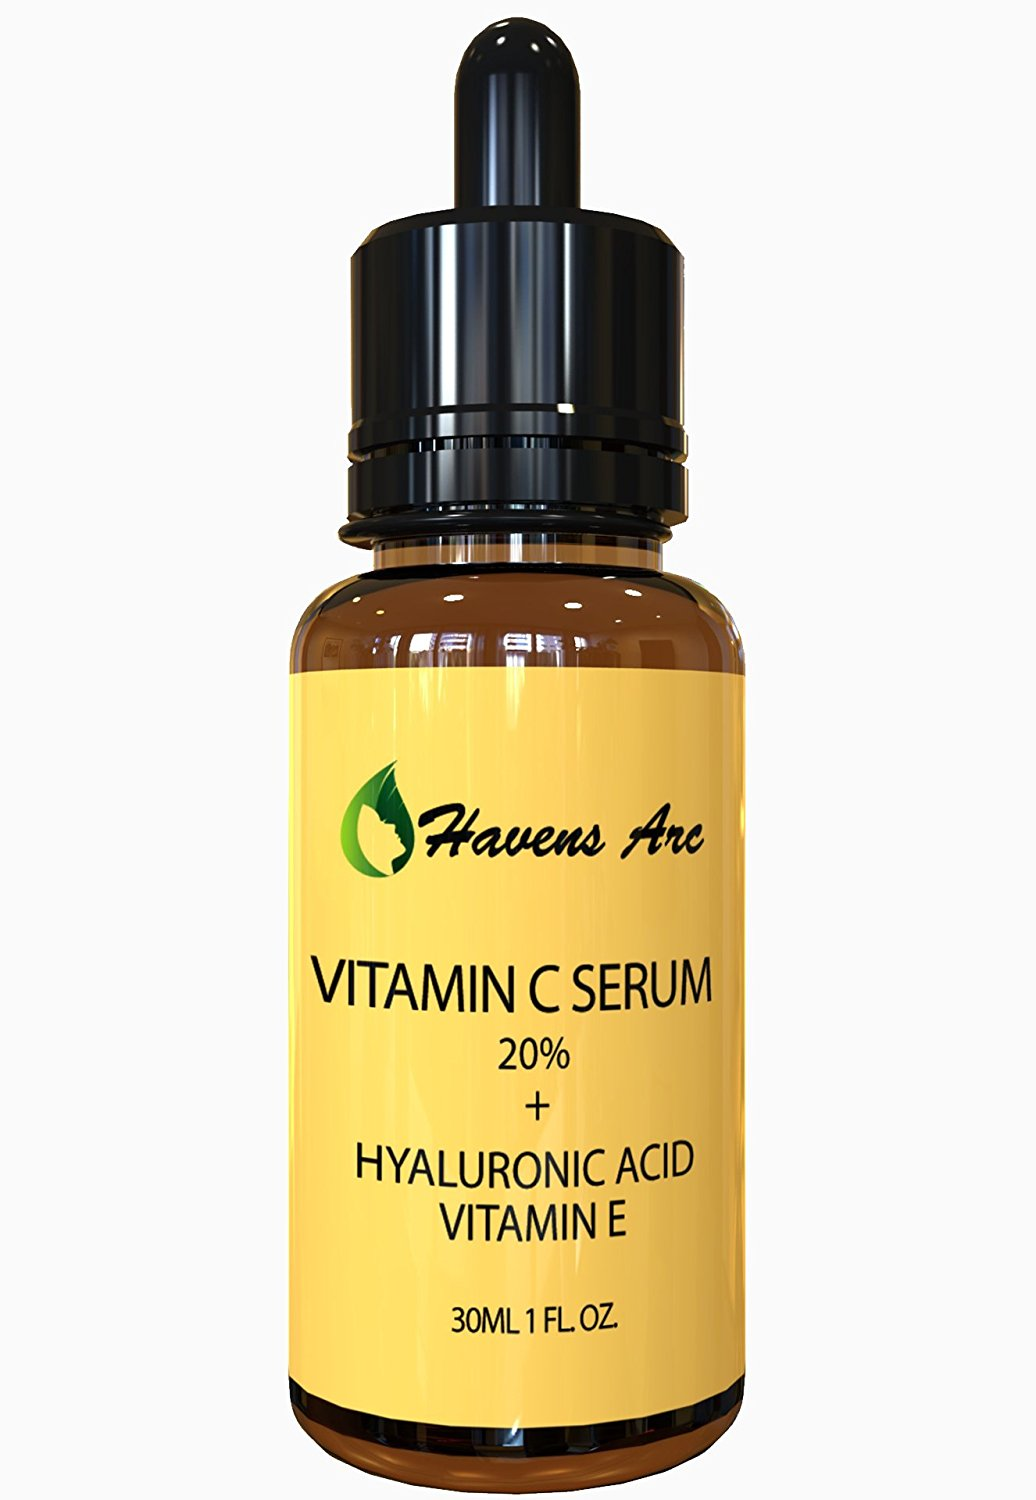 Vitamin C Serum for Face 20 % - Anti-aging Serum-anti Wrinkle Serum- Antioxidant Treatment - Quickly Reduce Pores-instantly Softens Hydrated Skin - Natural Ingredients Incl. Organic Rosehip Oil & Sea Buckthorn Oil, Hyaluronic Acid, Ferulic Acid – Guaranteed Results or Your